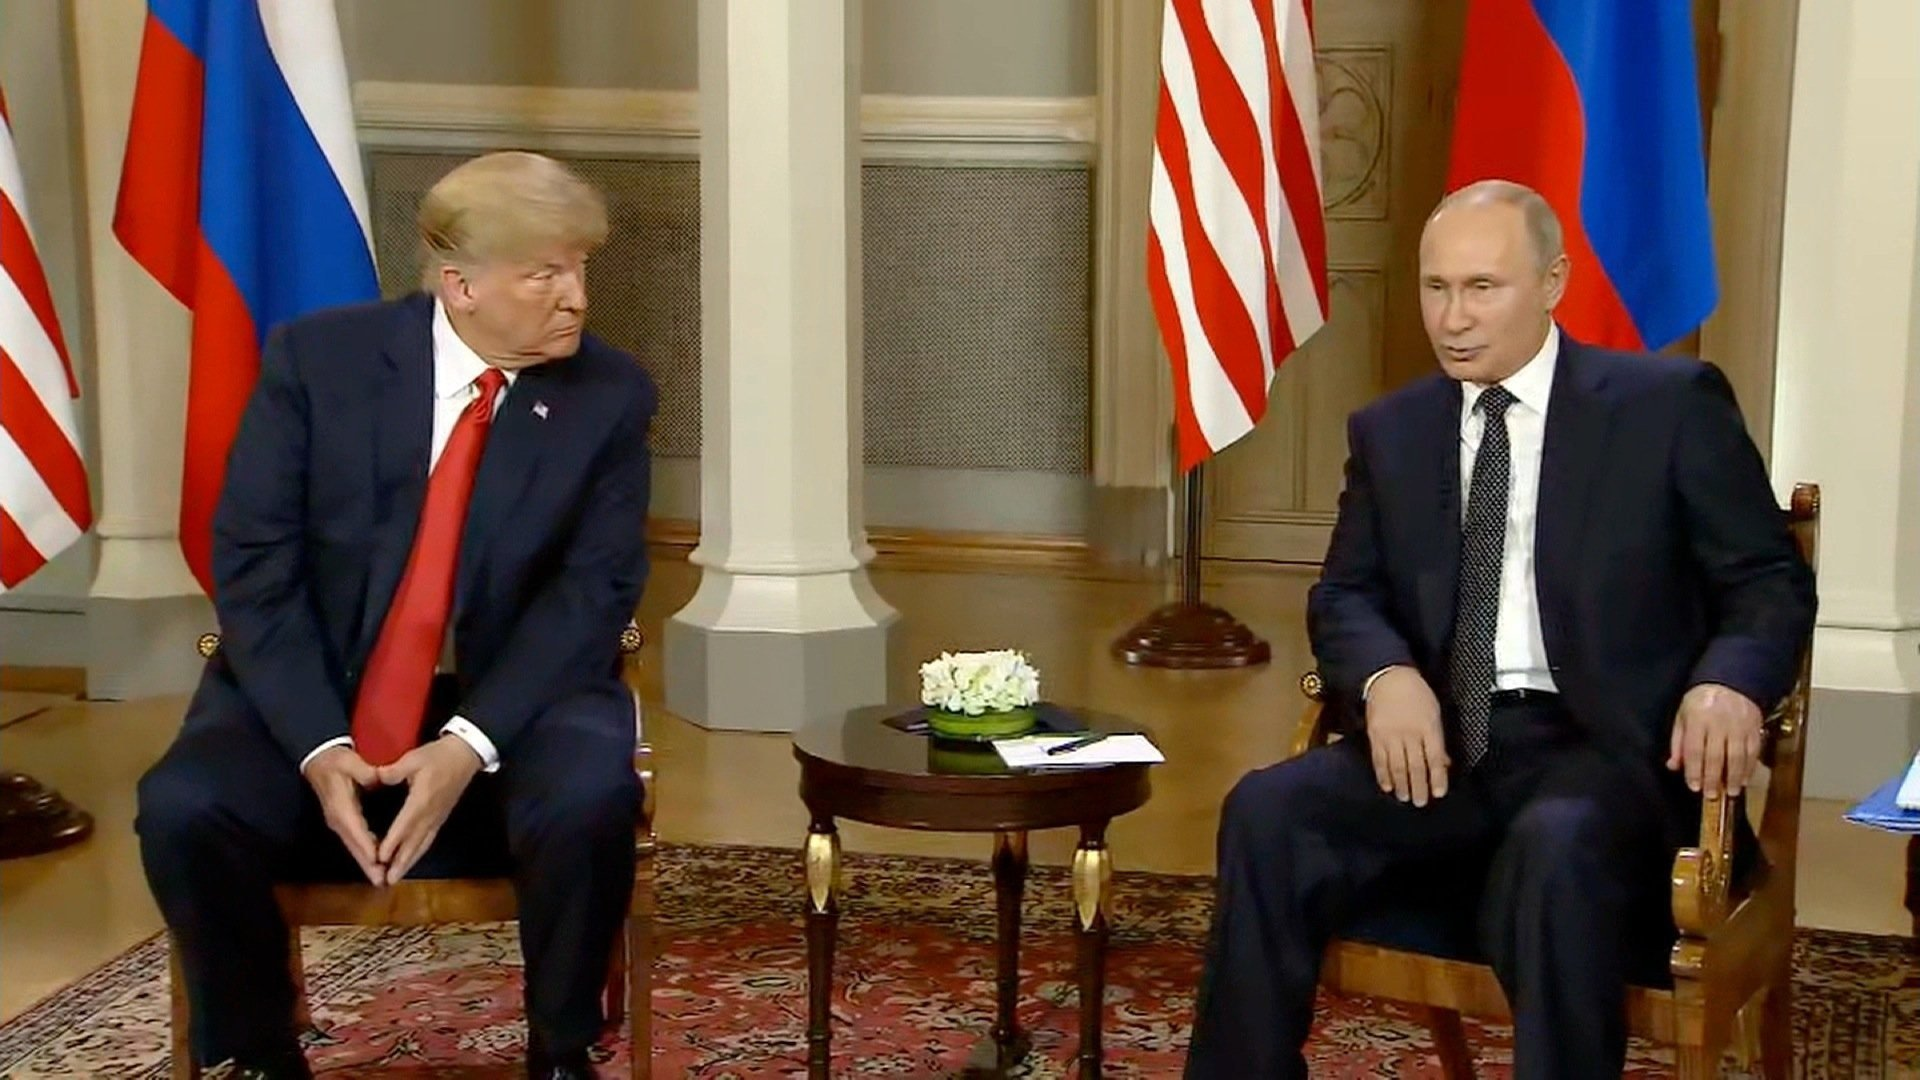 United States  lawmakers slam Trump as 'weak,' 'cowardly' in summit with Putin